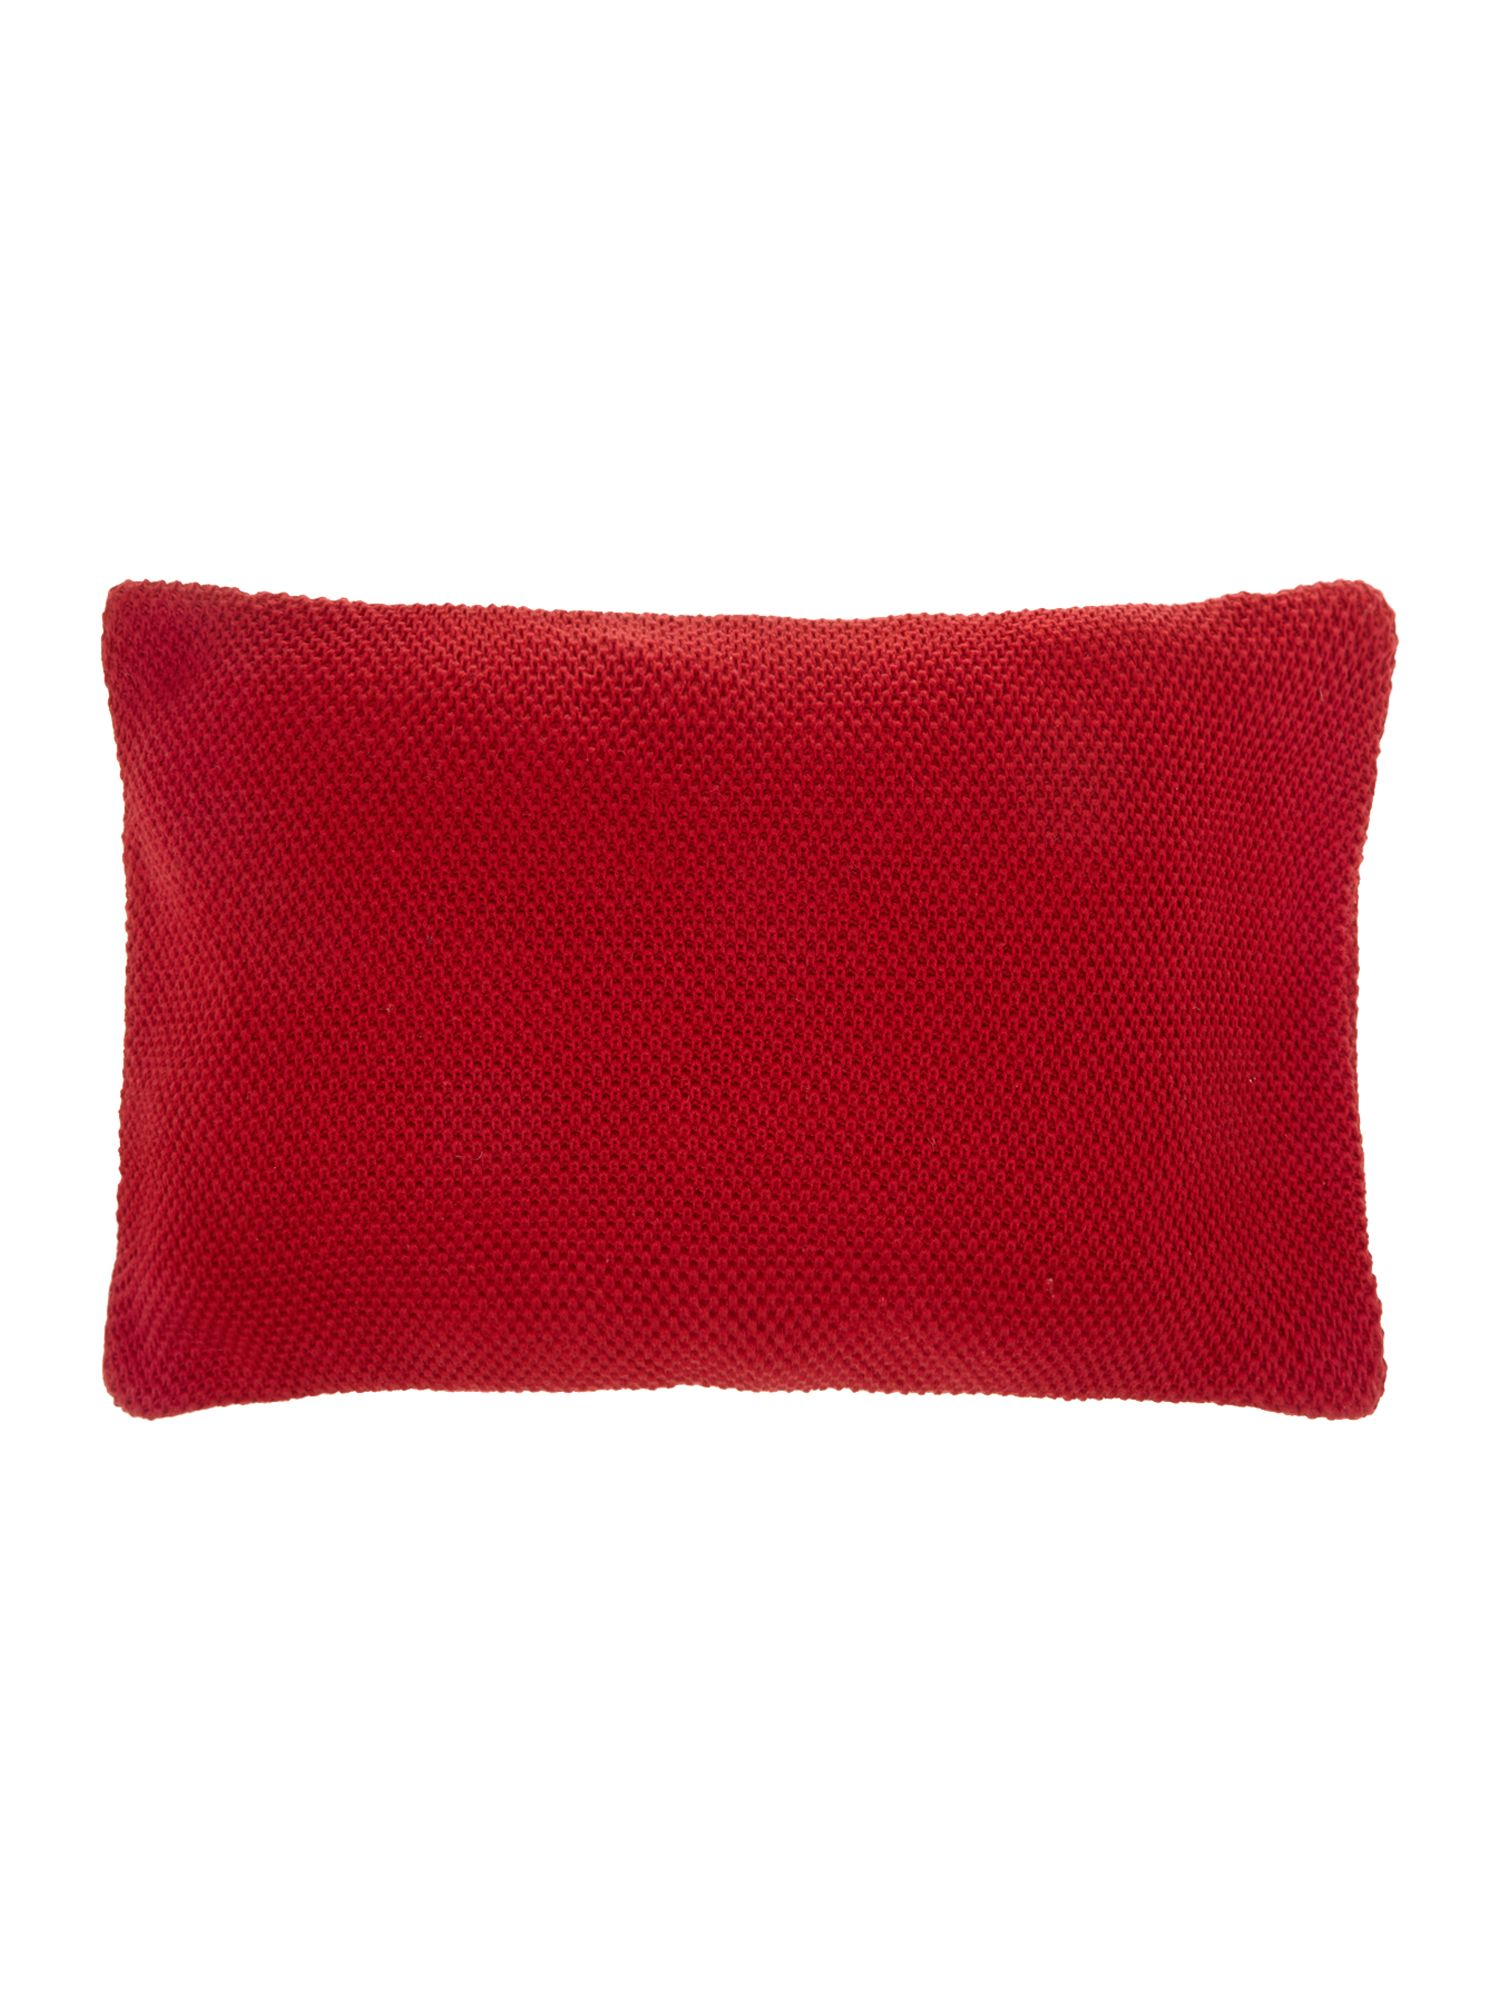 Red knitted cushion